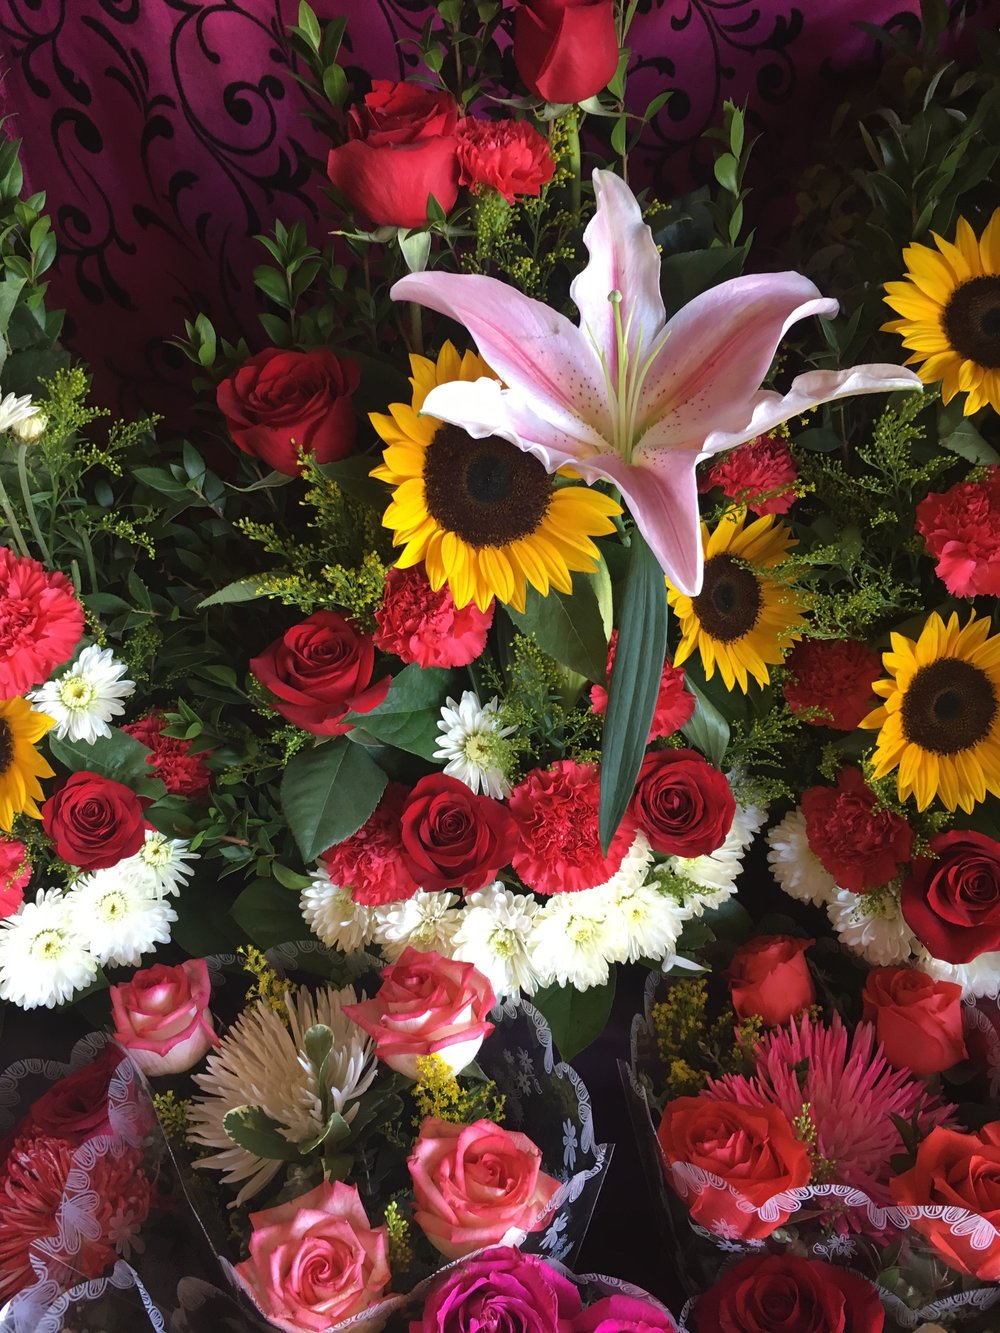 We have so many fresh flower arrangements, bouquets and fixtures to choose from!